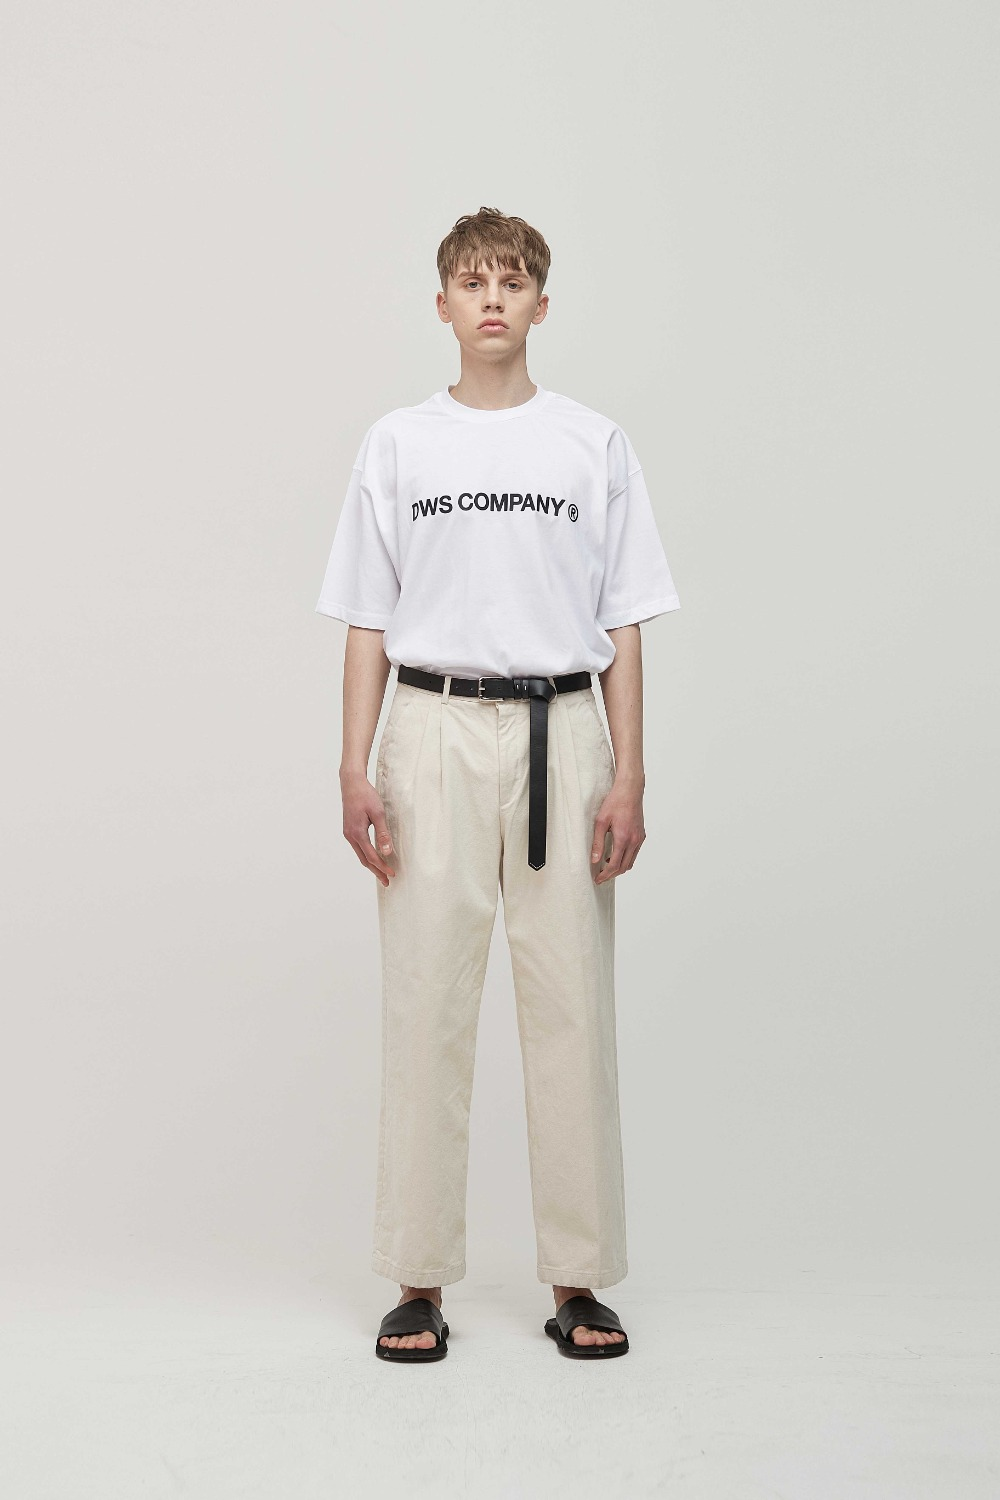 SIGNATURE LOGO T-SHIRTS + TROUSER PANTS